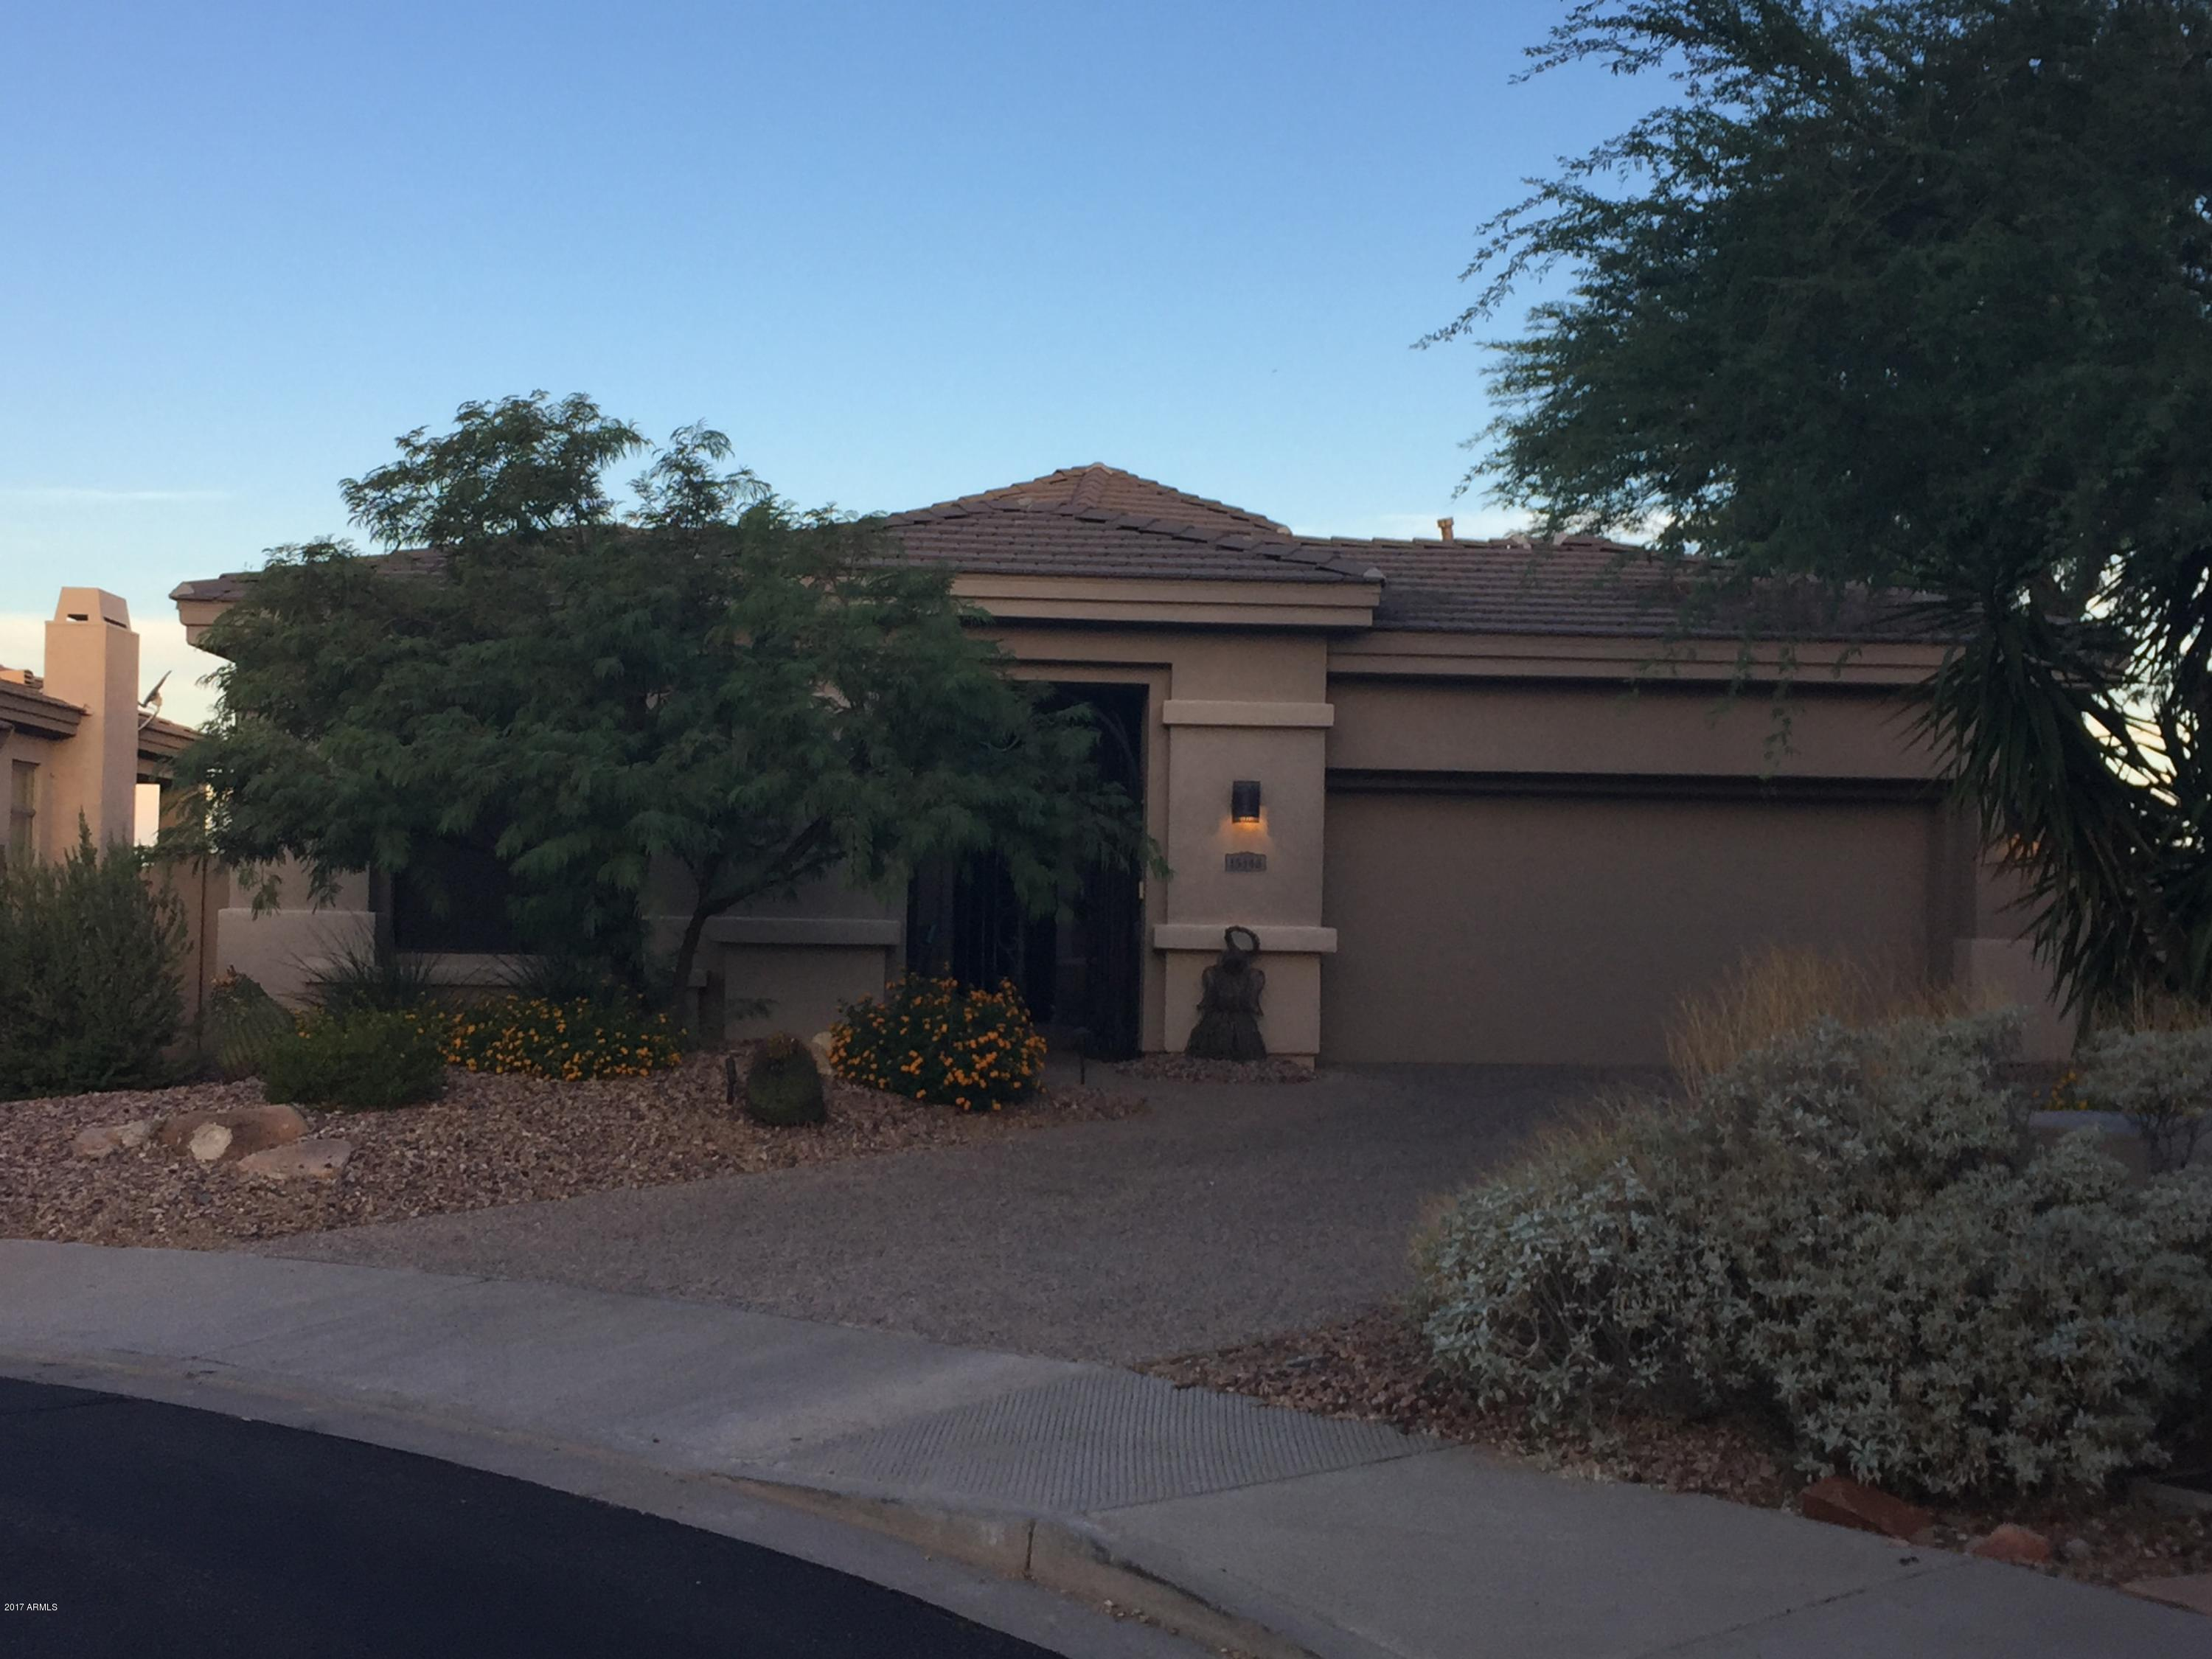 15348 N 106TH PLACE, SCOTTSDALE, AZ 85255